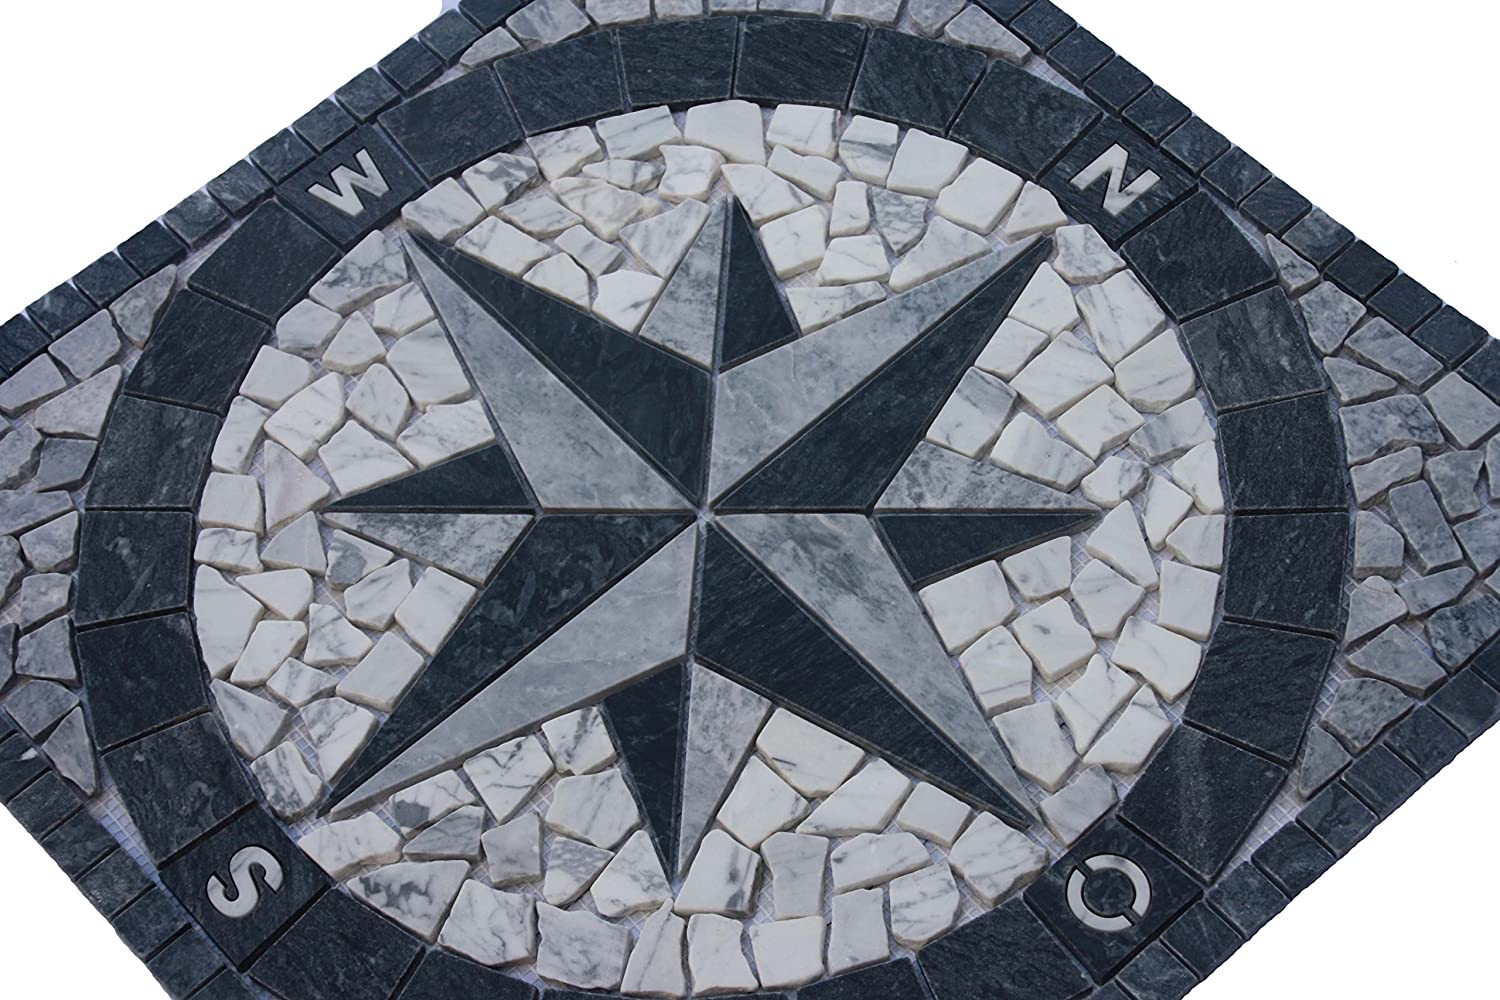 Marble mosaic square medallion tile 60x60 cm Compass Handmade in Europe Grey Elroni